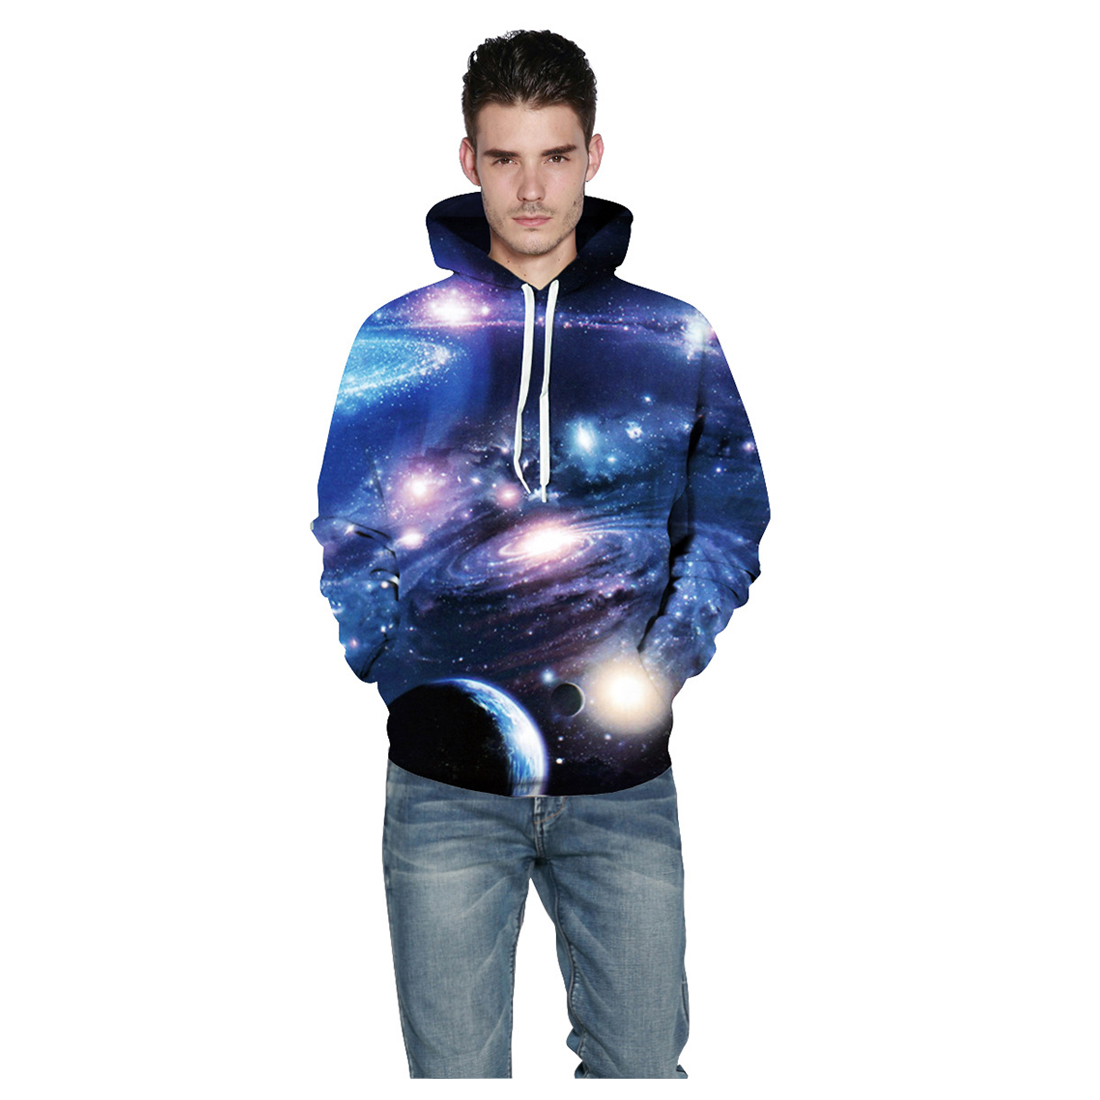 Men/Women New Space Galaxy Sweatshirts With Hat Fashion Hooded Hoodies 3d Print Planets Whirlpools Spring Autumn Thin Hood